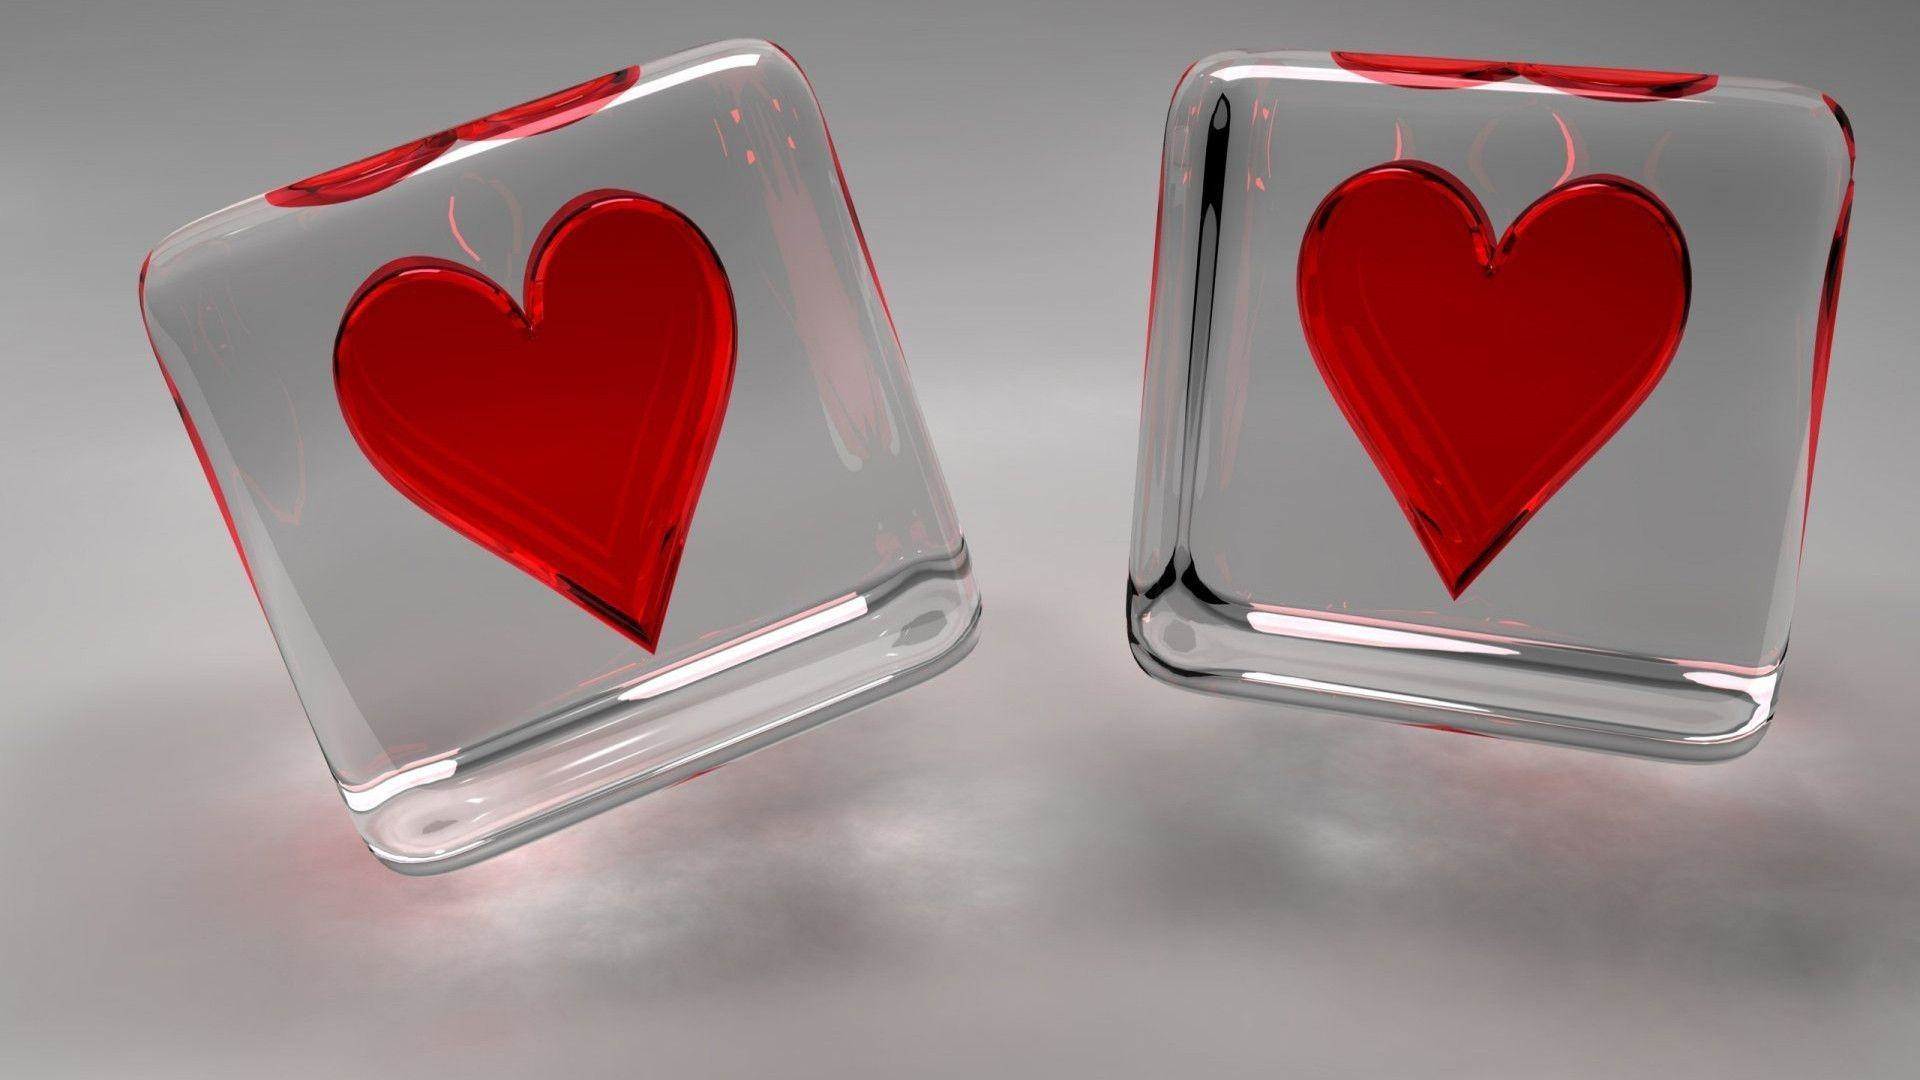 Love Heart Wallpapers Hd 68 Background Pictures